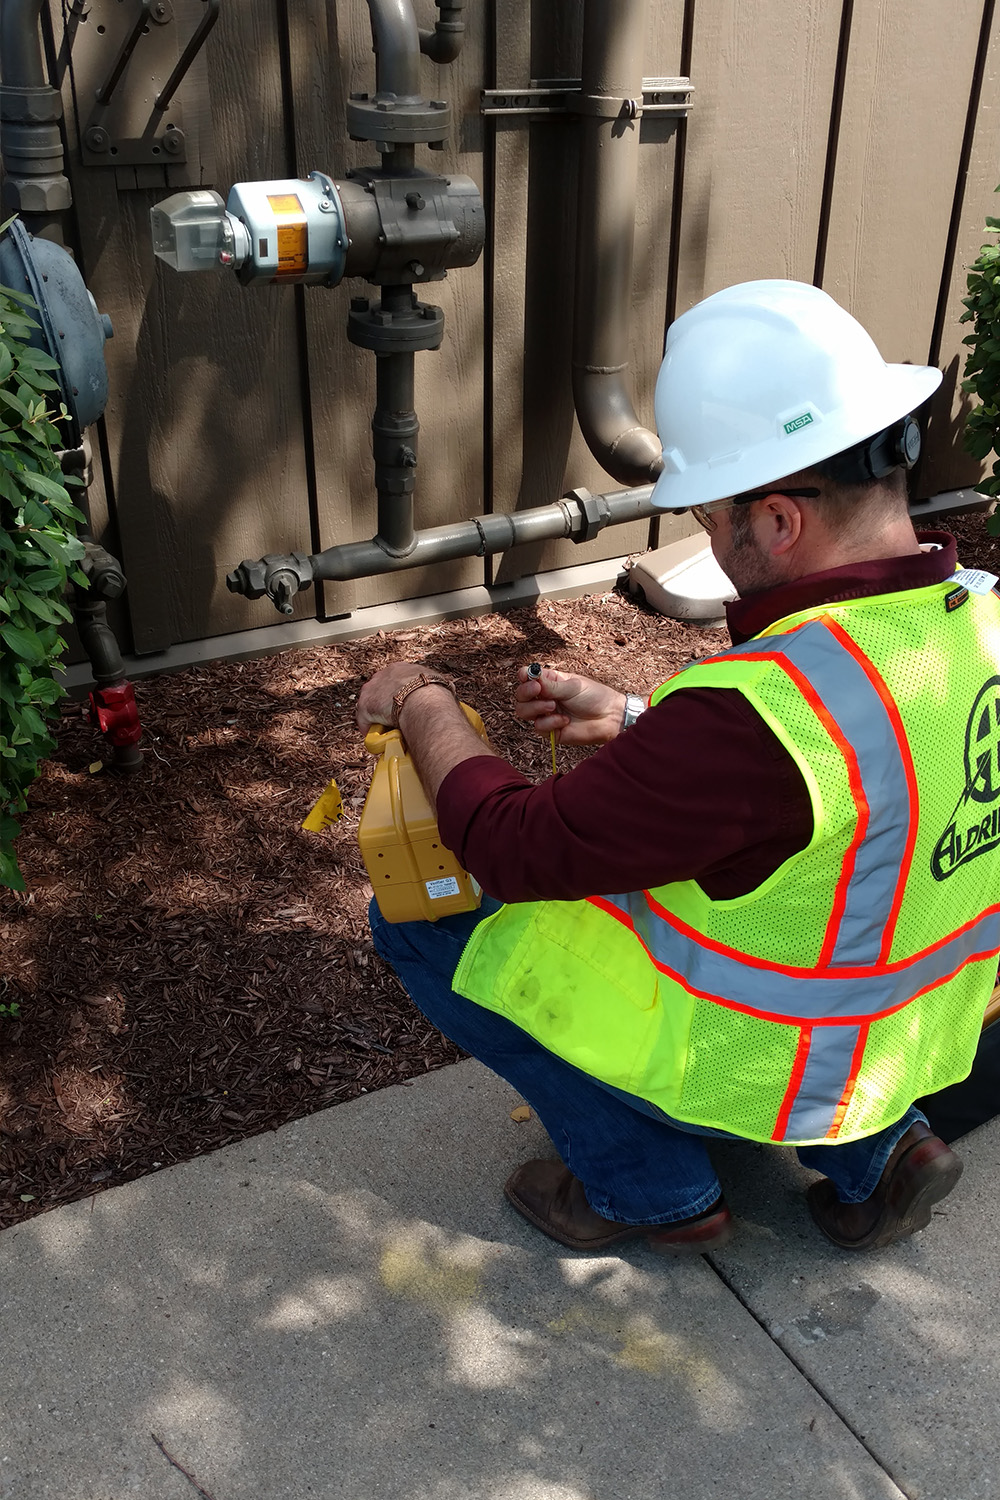 gas-utility-projects-work-infrastructure-contractor-construction-nationwide-substation-aldridge-electric-indiana-chicago-illinois.jpg